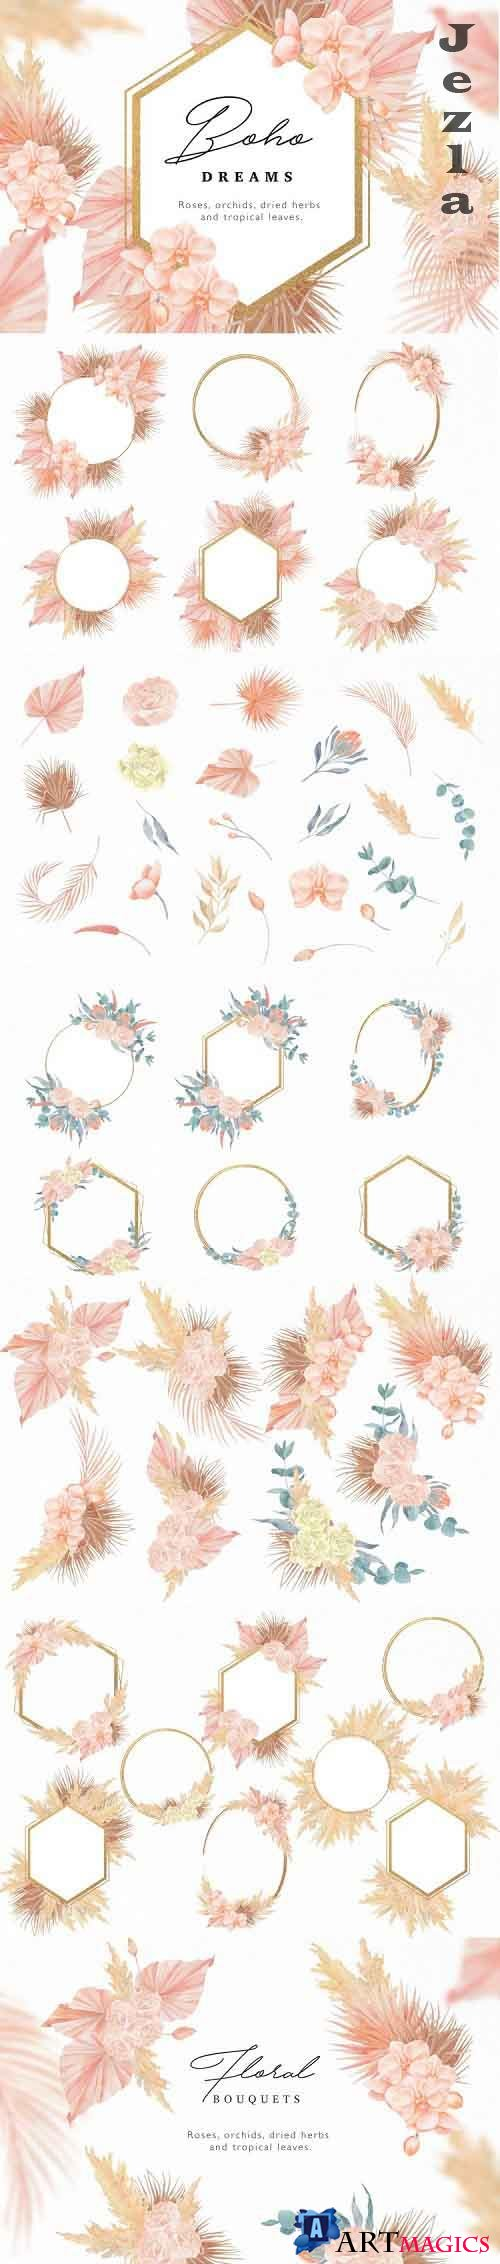 Boho Dreams Golden Frames Watercolor Flowers Collection - 877370